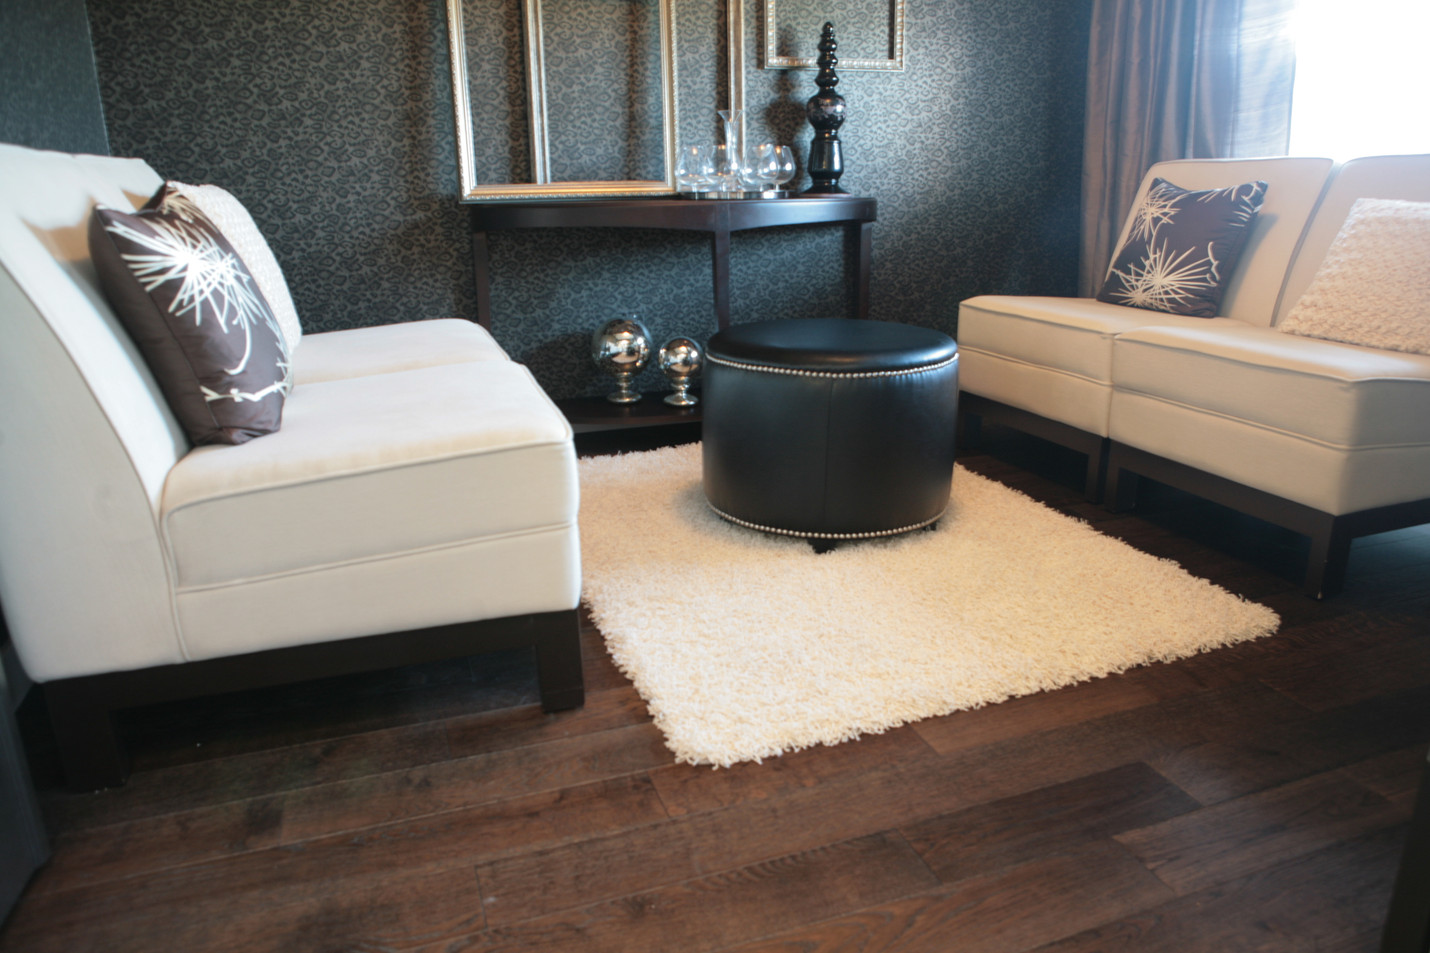 Dark hardwood flooring gives this space a whole new level of sophistication.